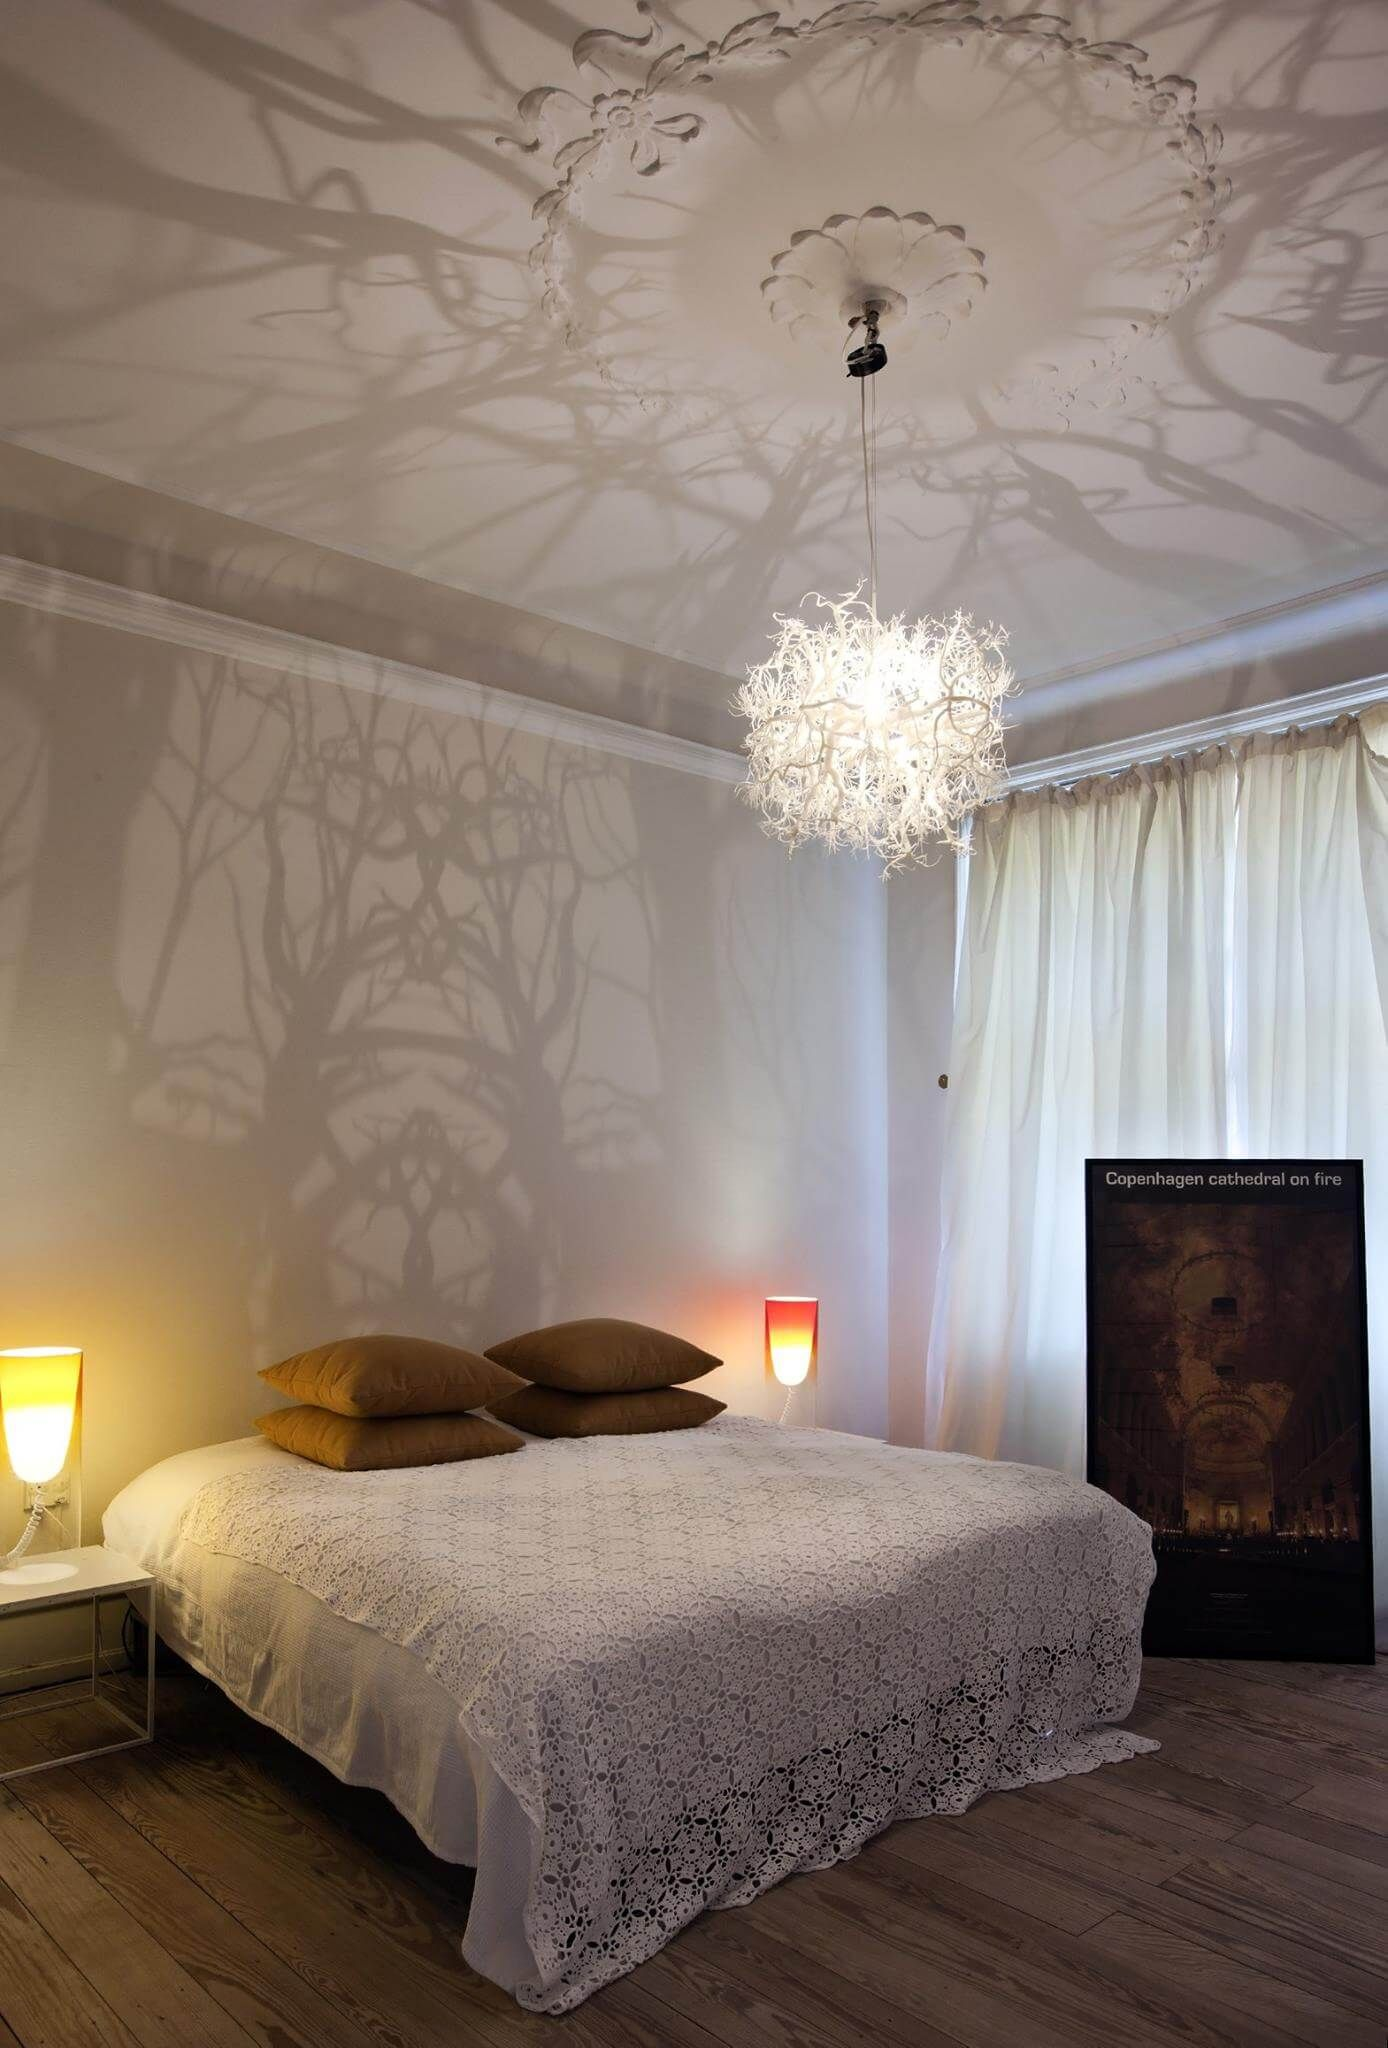 Intricate Chandelier Casts Mysterious Forest Scene on Walls